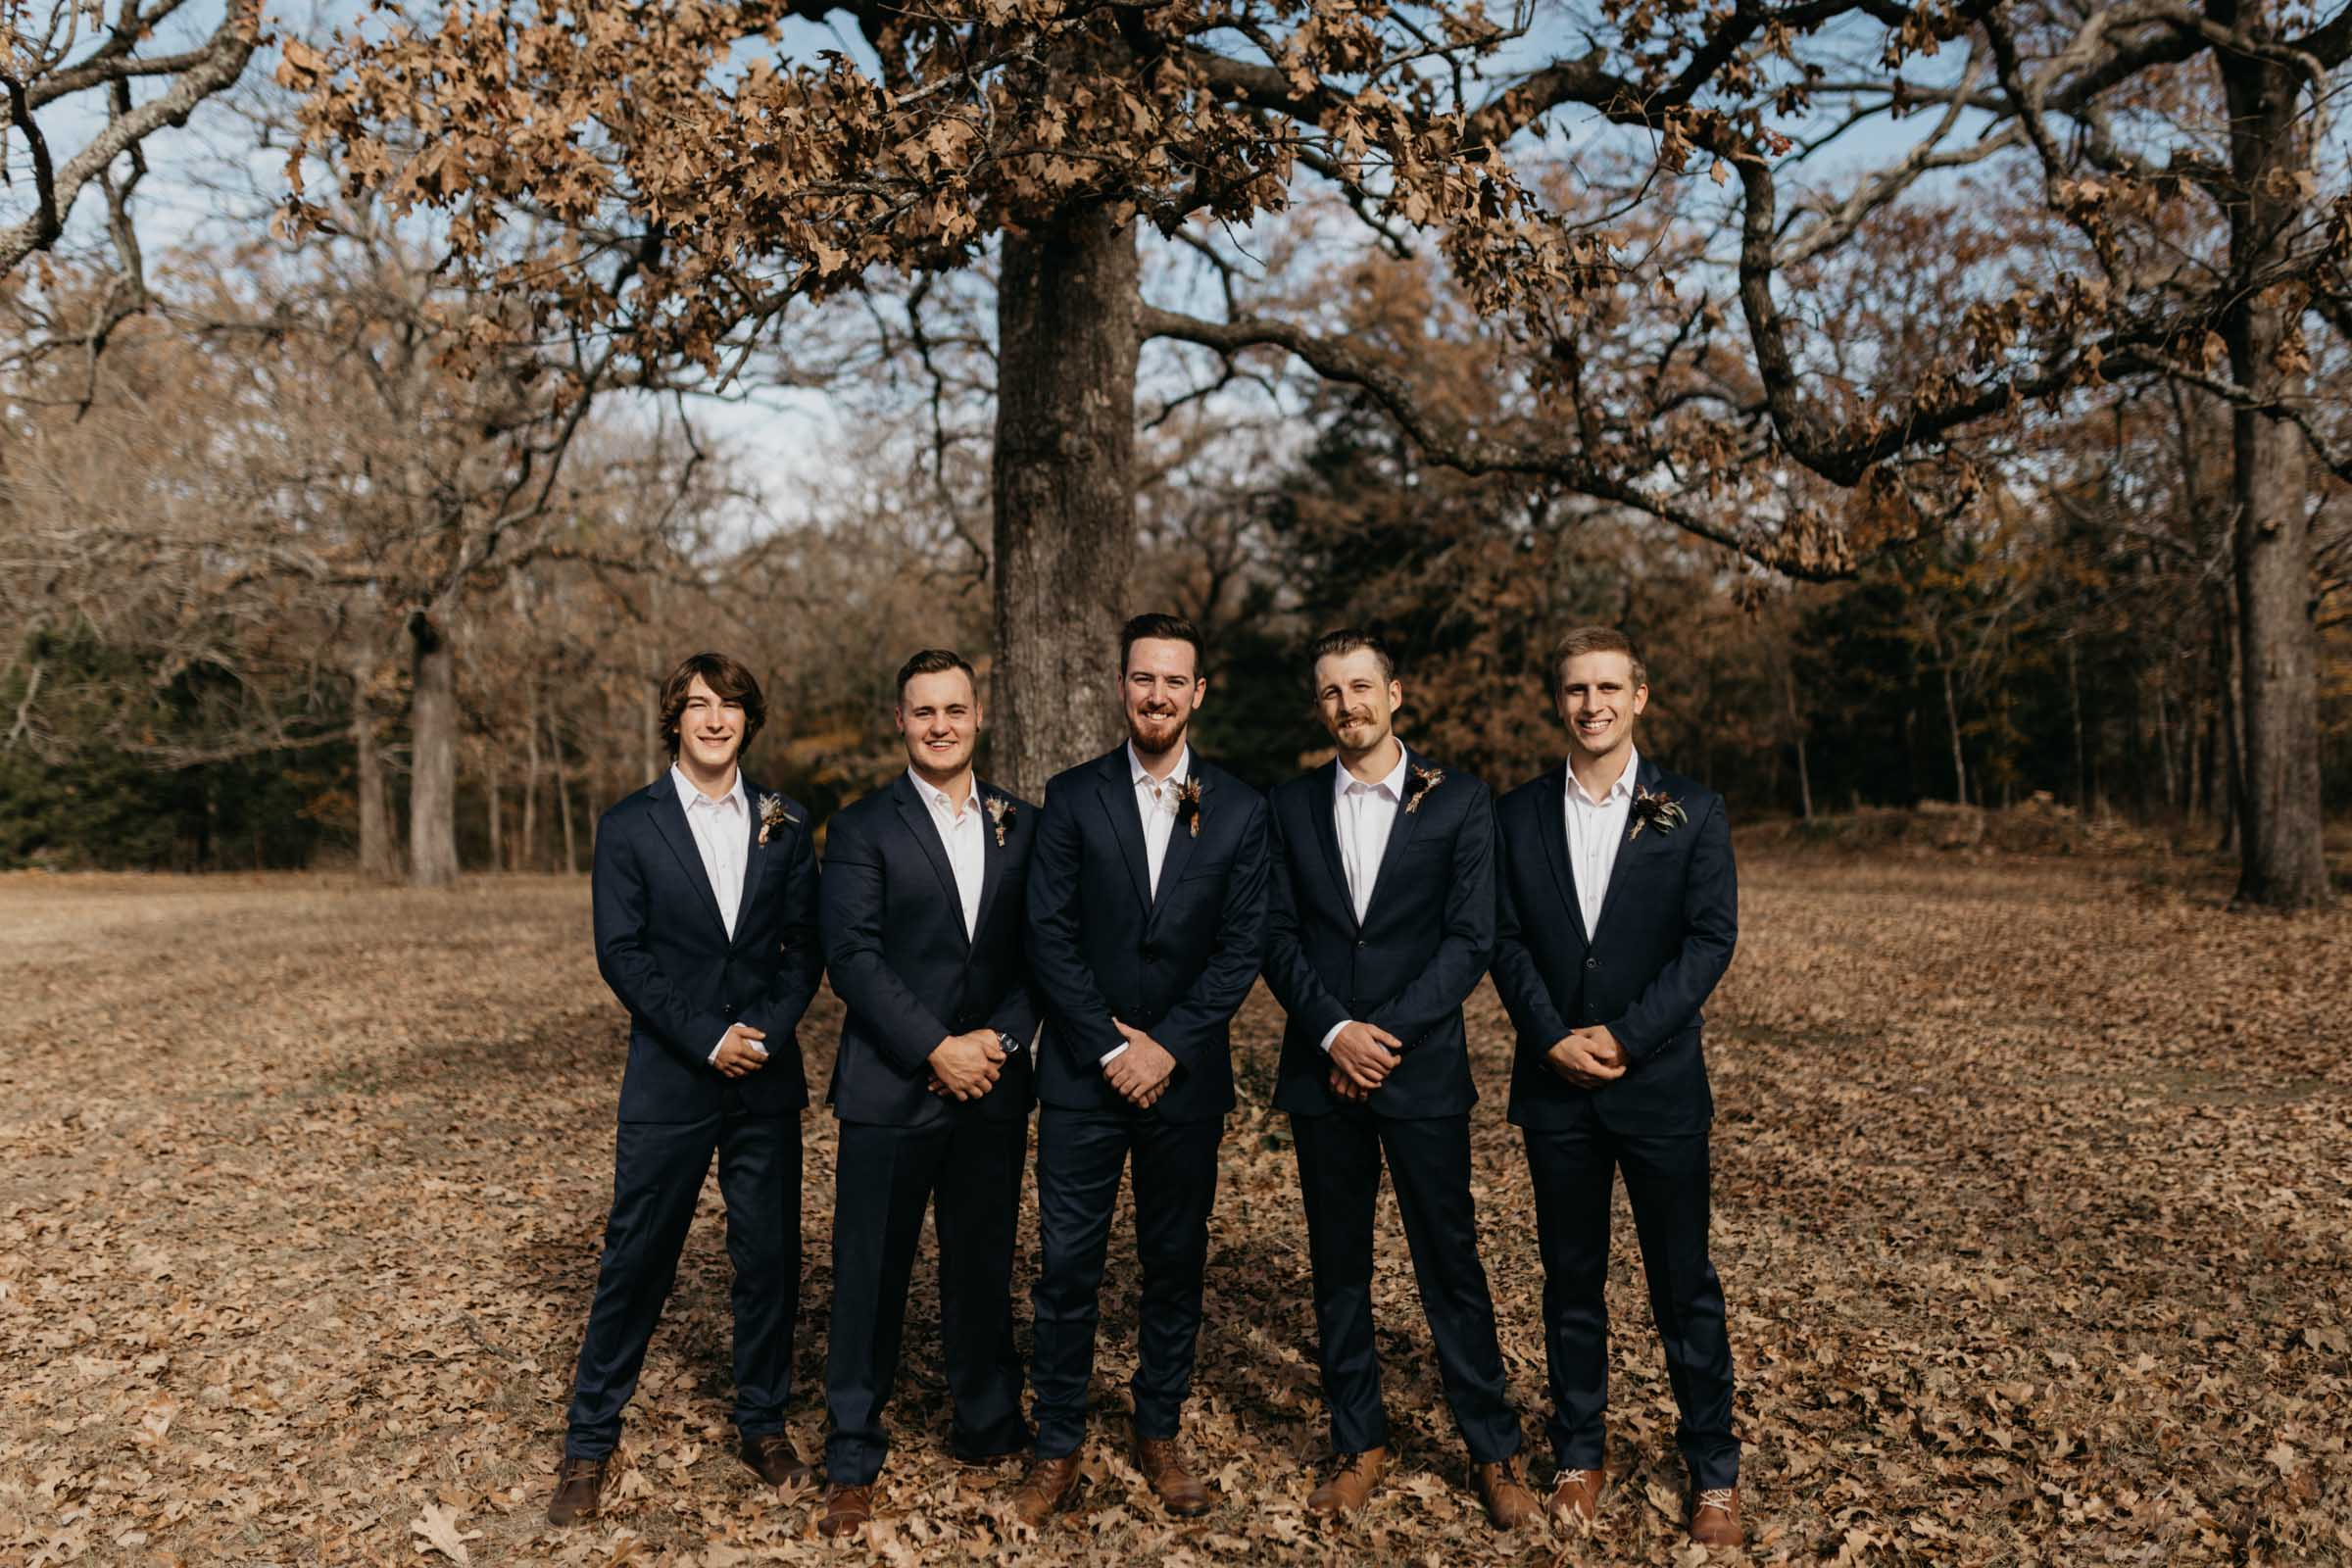 Groomsmen wearing blue suits and posing for a photo on wedding day